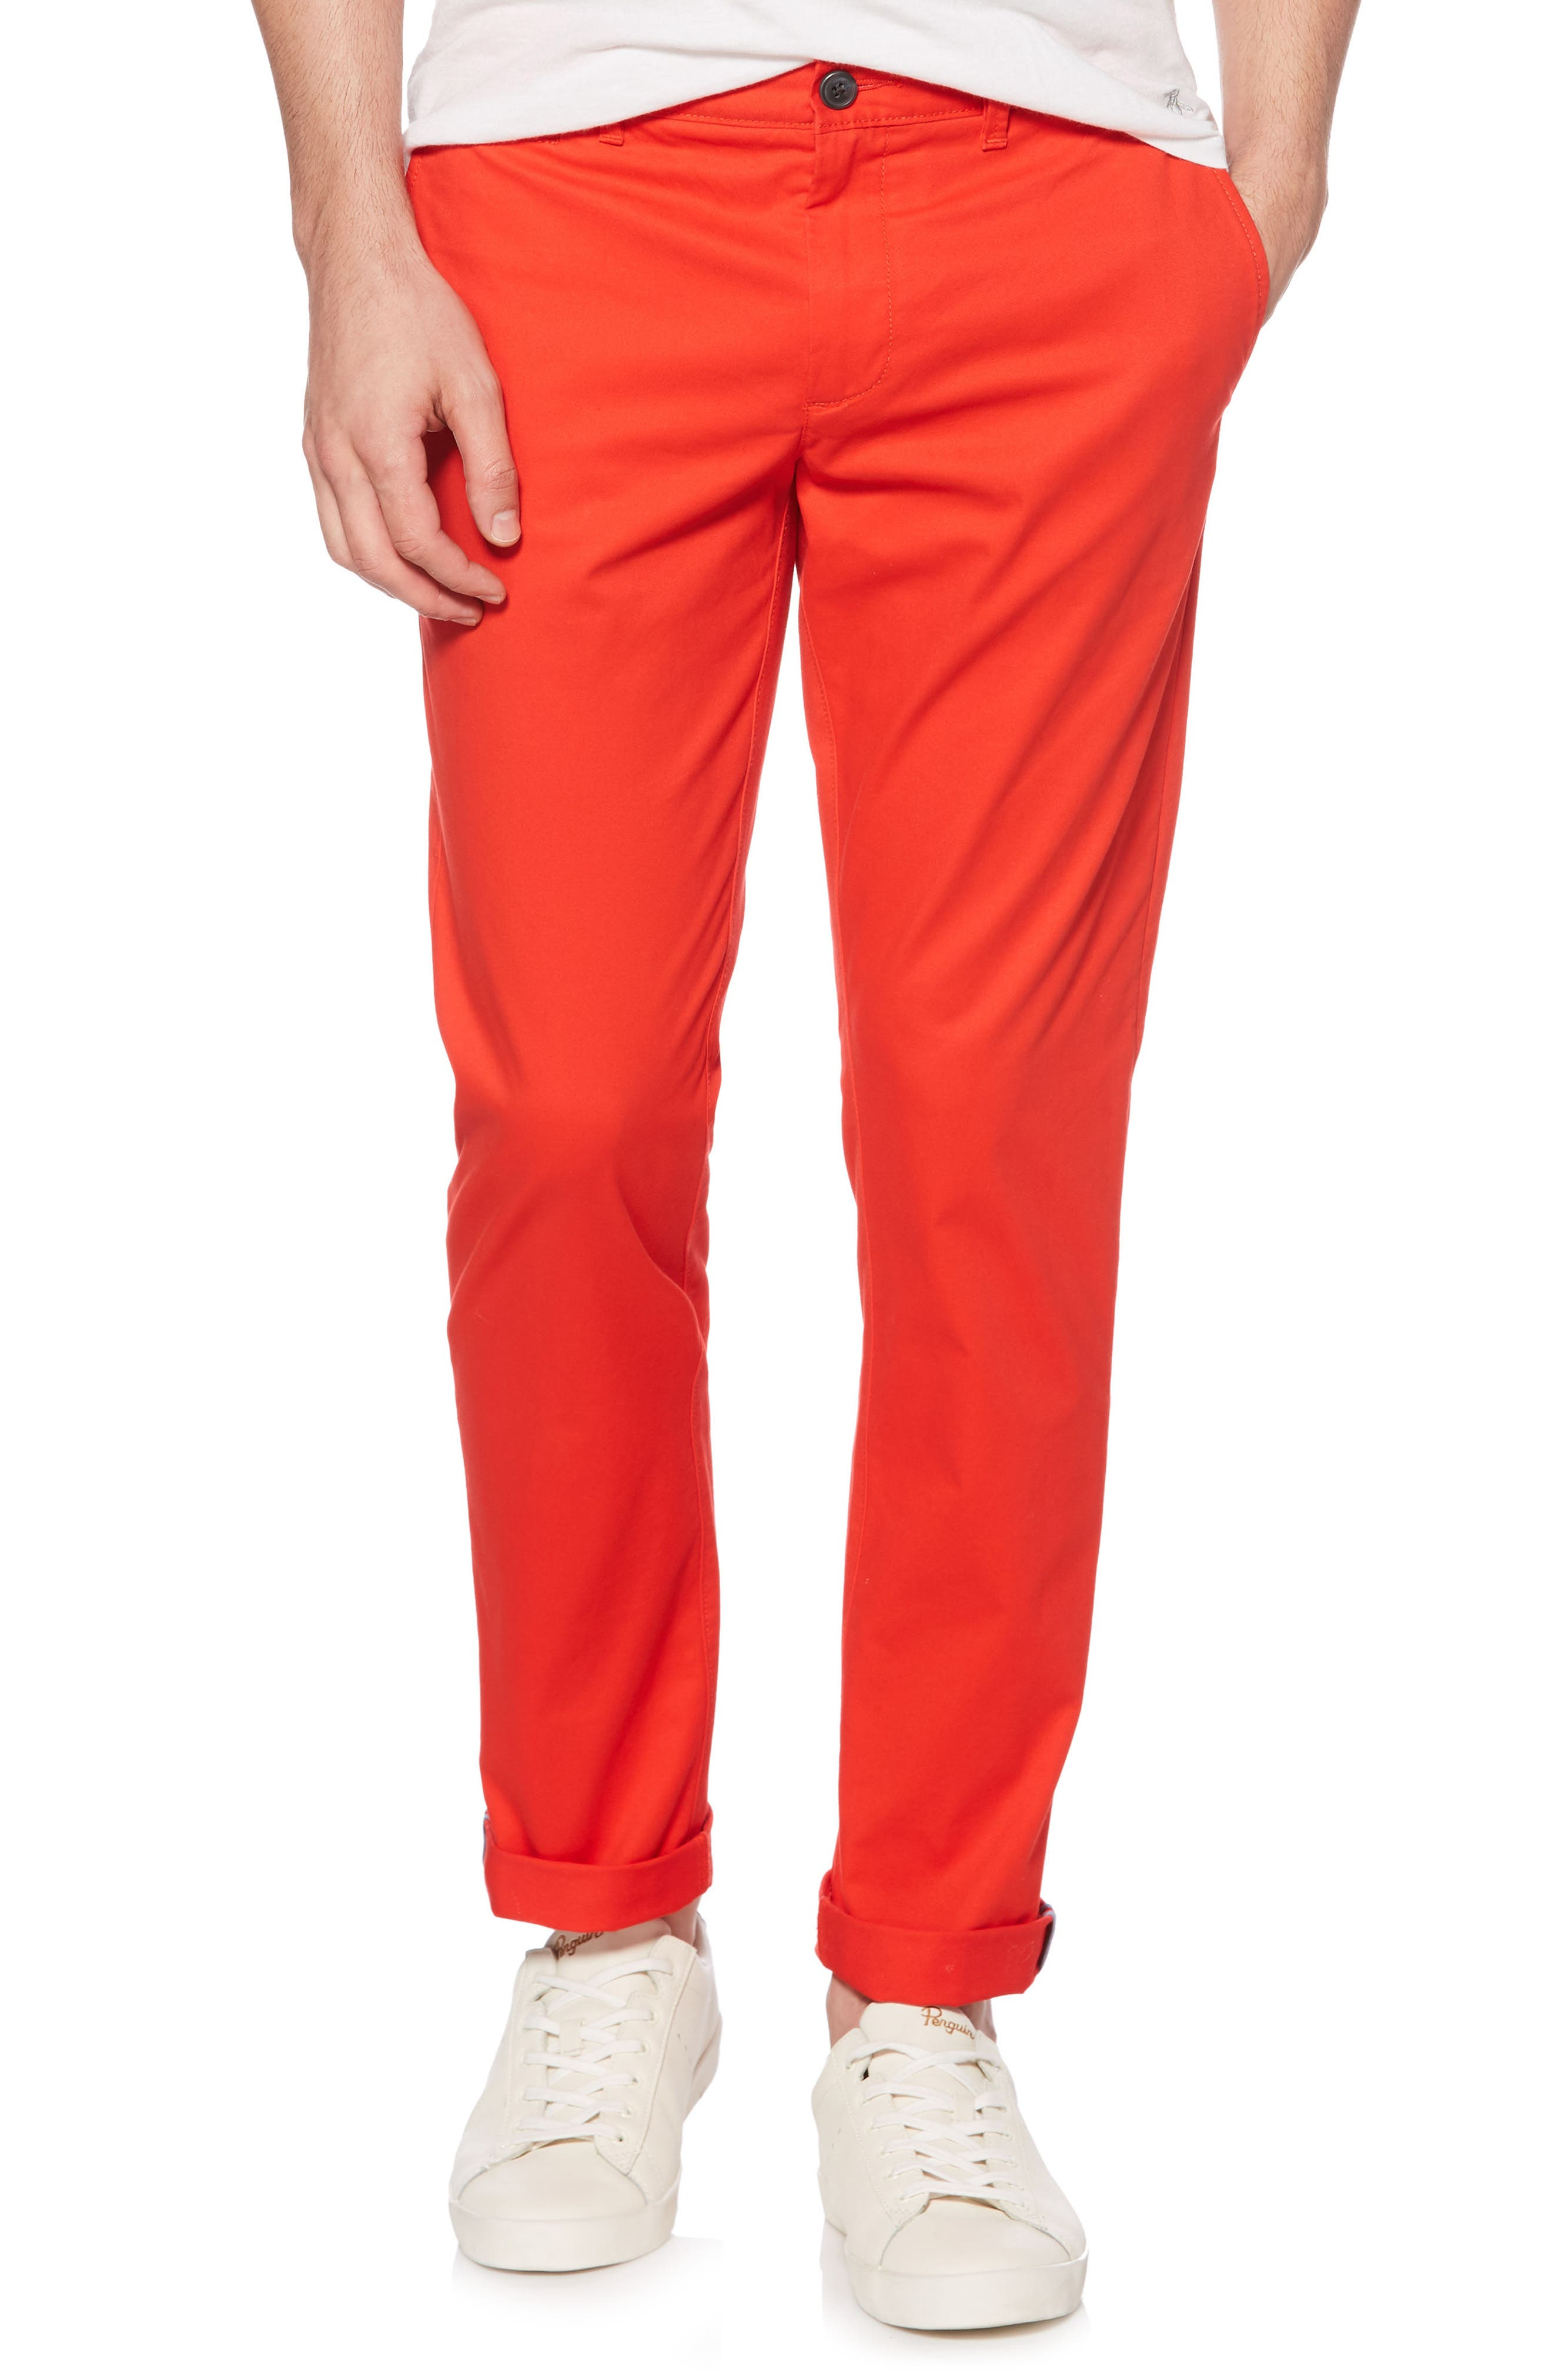 P55 Slim Stretch Chinos,                             Main thumbnail 1, color,                             Flame Scarlet